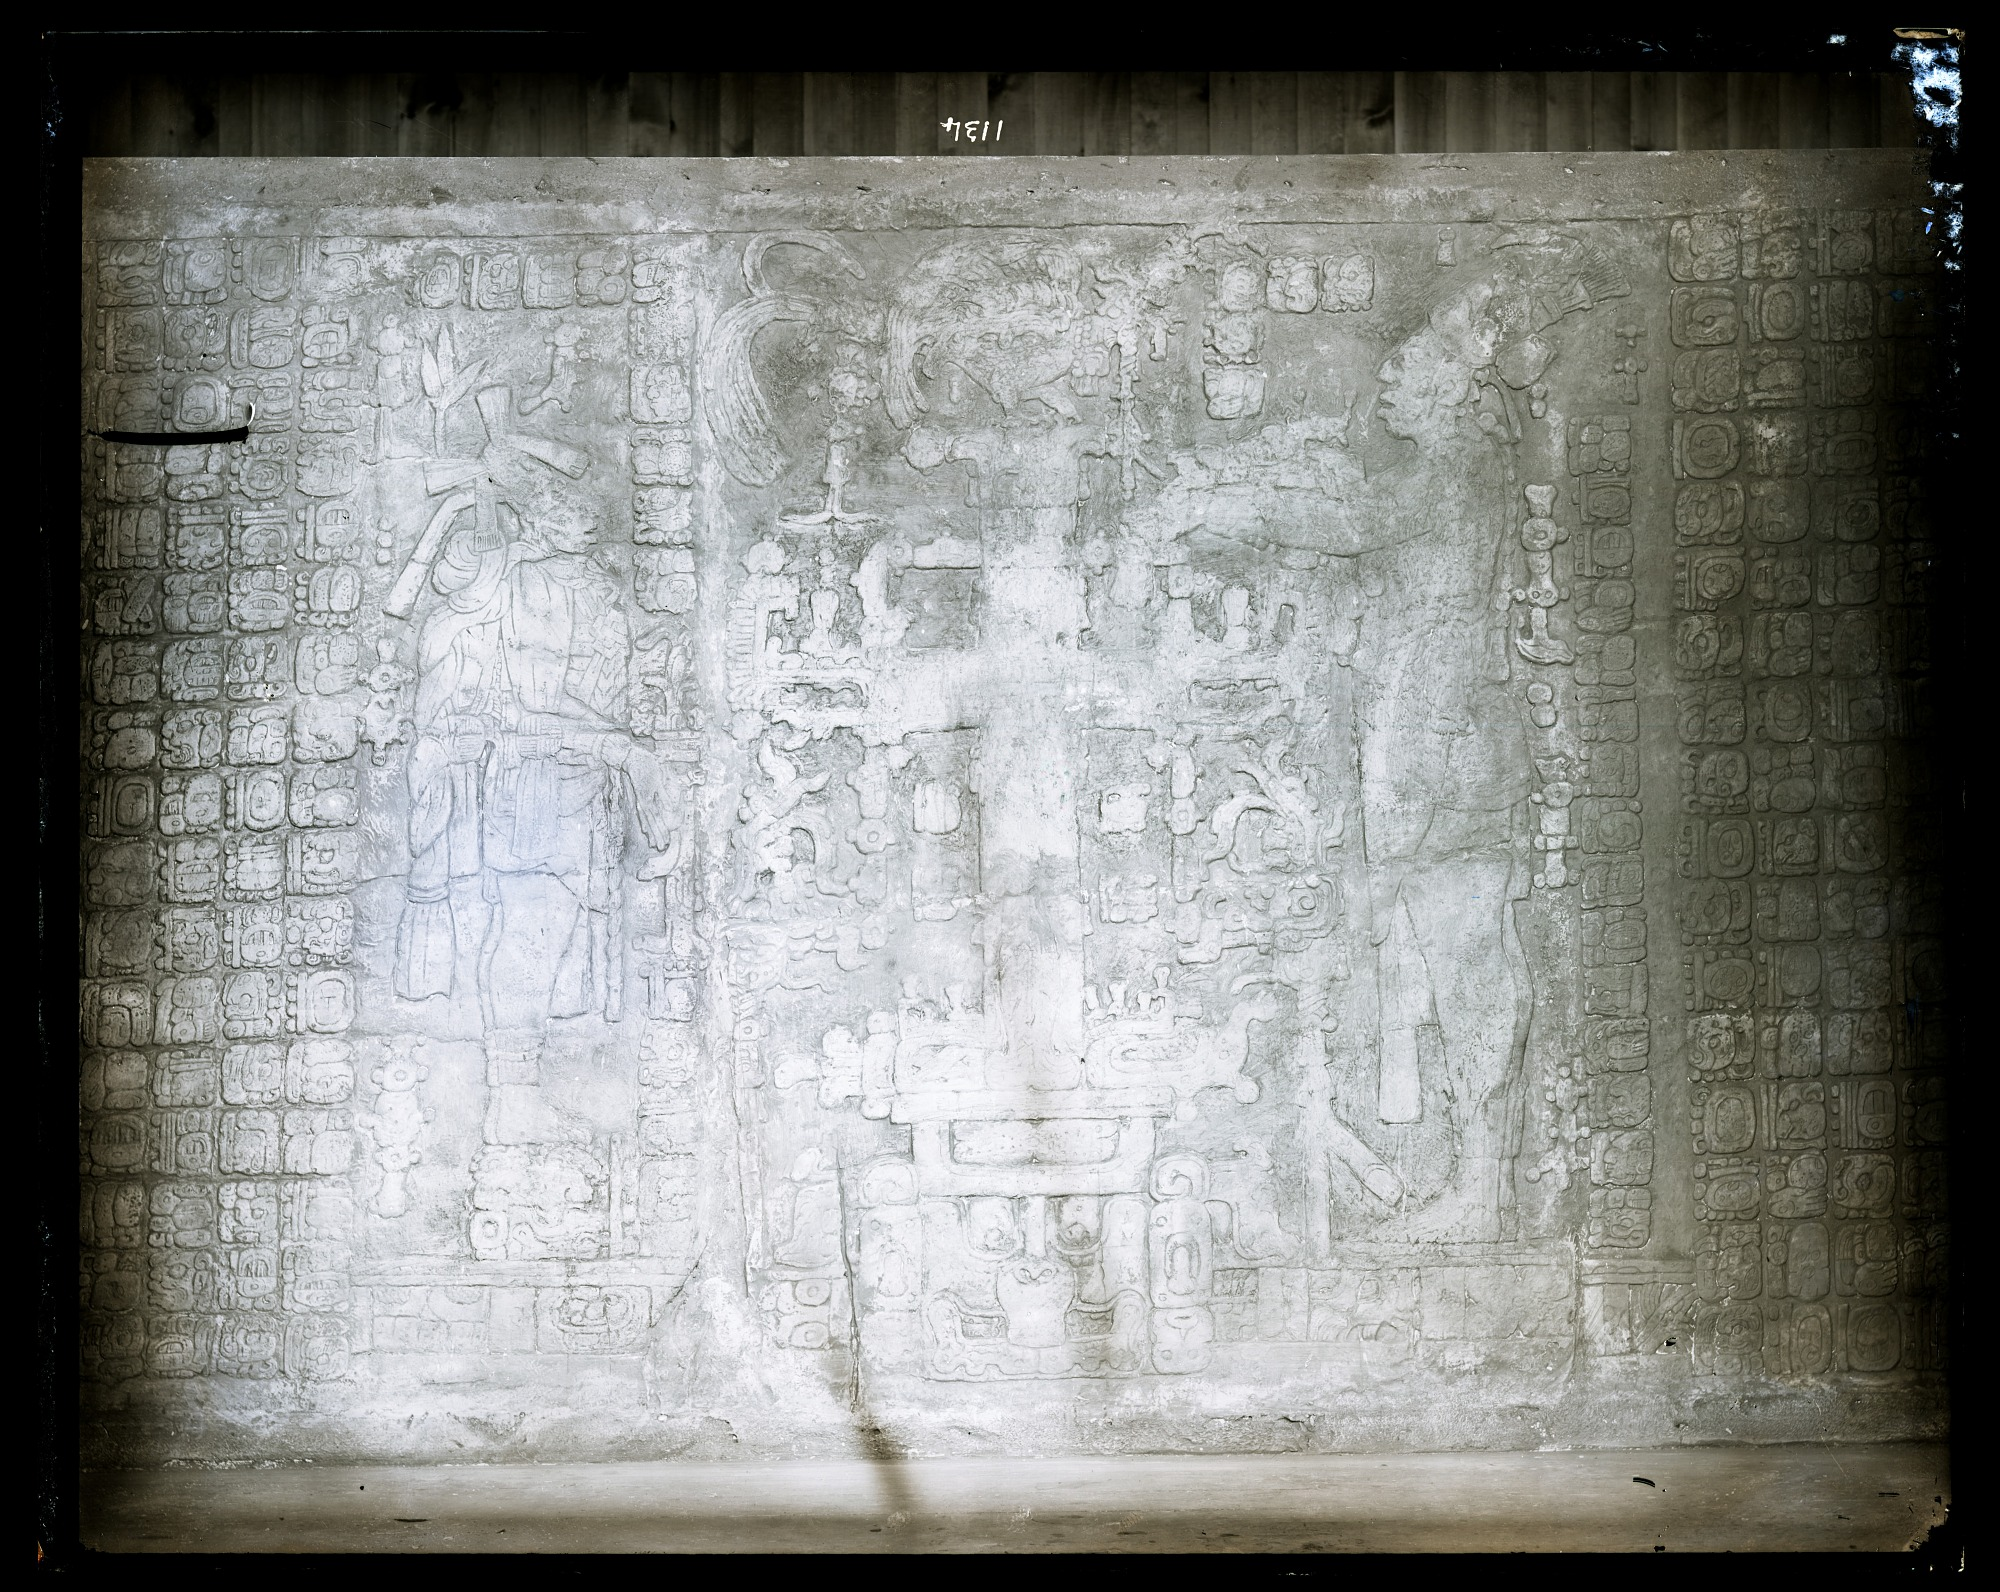 Cast of Palenque Tablet, 1880, Smithsonian Institution Archives, SIA Acc. 11-007 [MNH-1134].